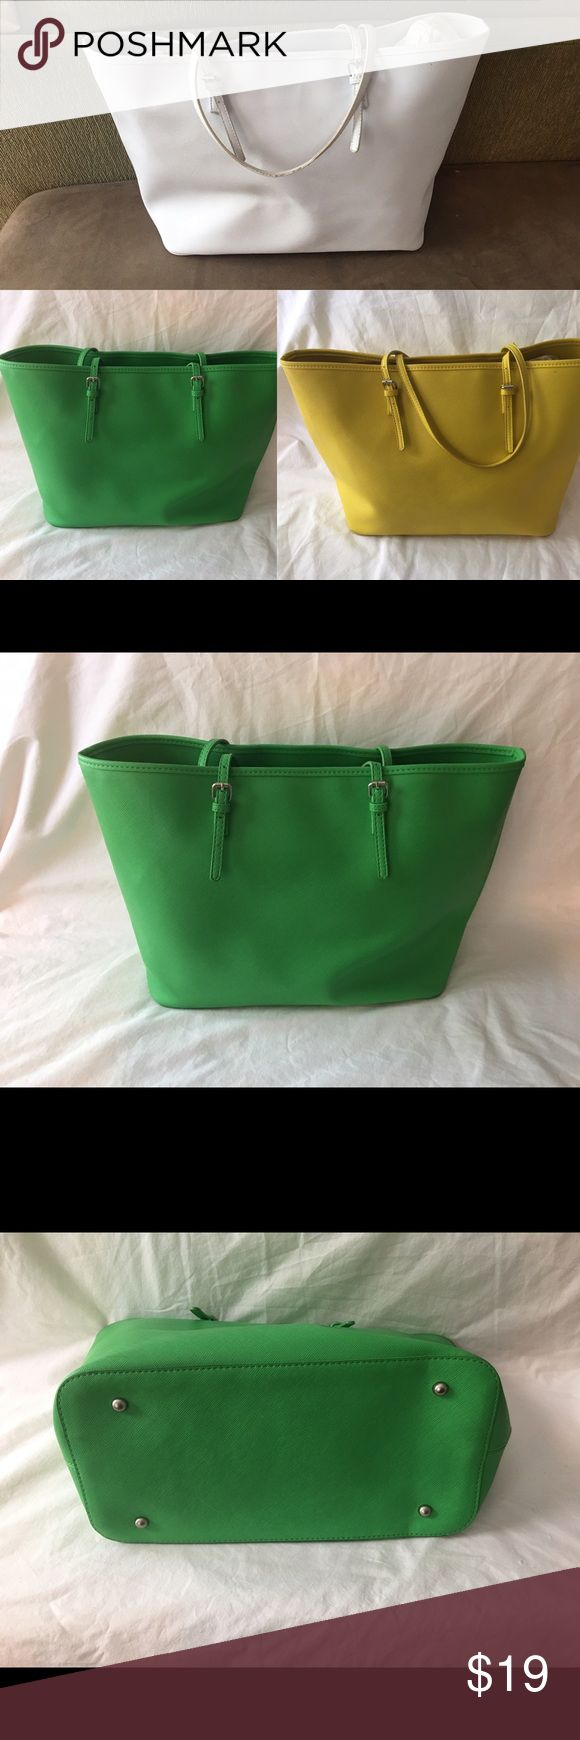 Large Green Tote Bag Large green, summer, fun tote bag. Fits all your goodies in one bag! Comes in three colors. Sold separately. Bags